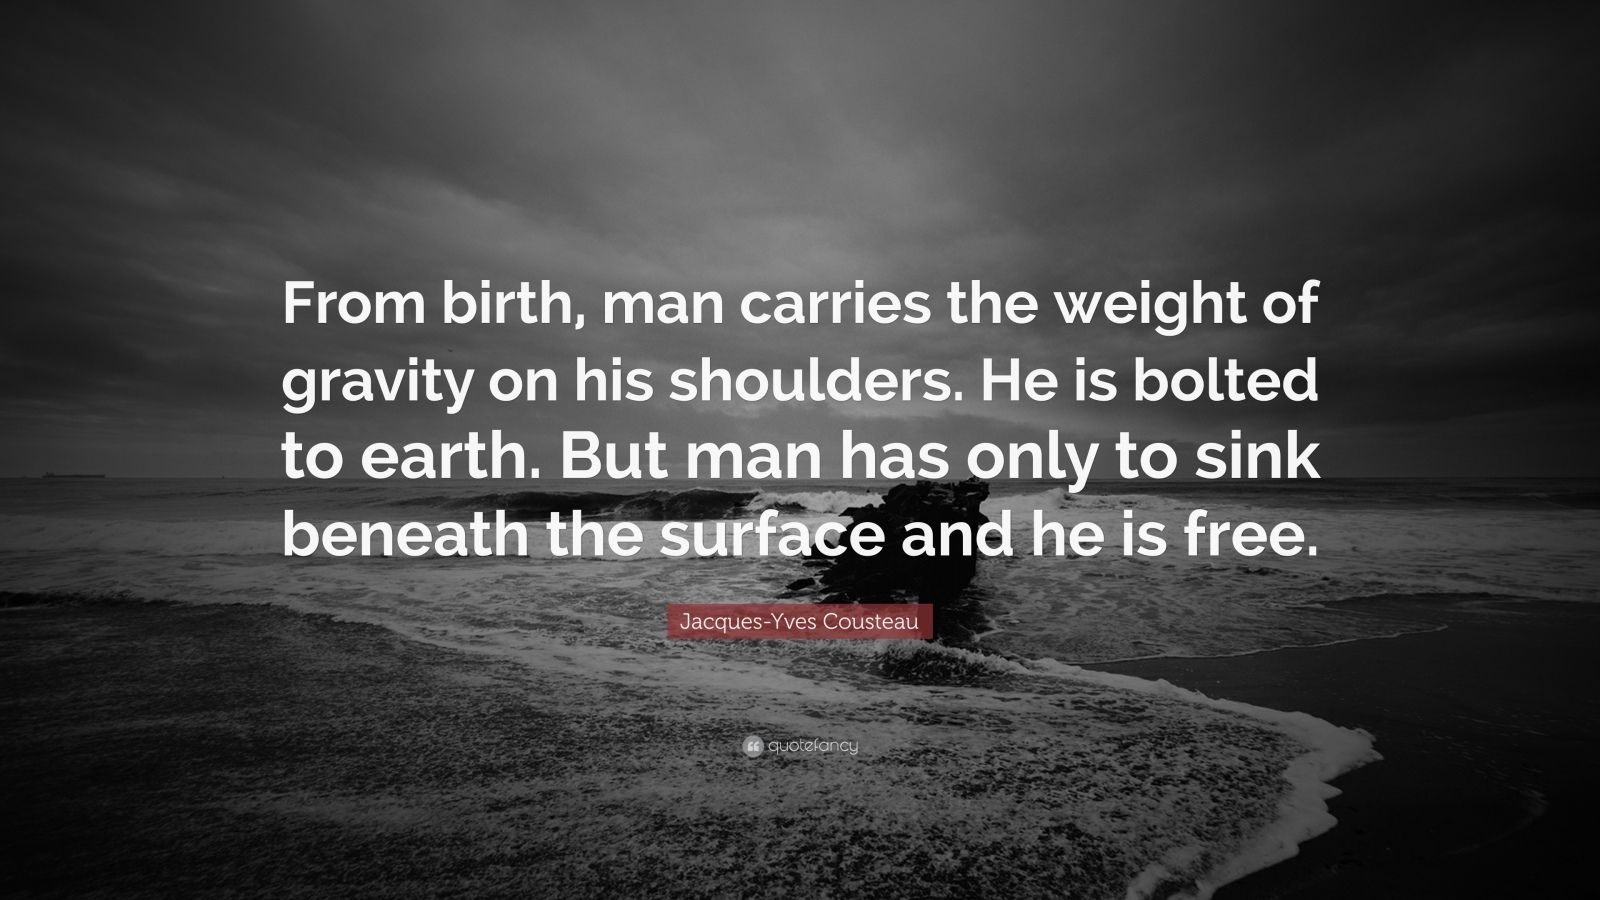 """Jacques-Yves Cousteau Quote: """"From birth, man carries the weight of gravity on his shoulders. He is bolted to earth. But man has only to sink beneath the surface and he is free."""""""